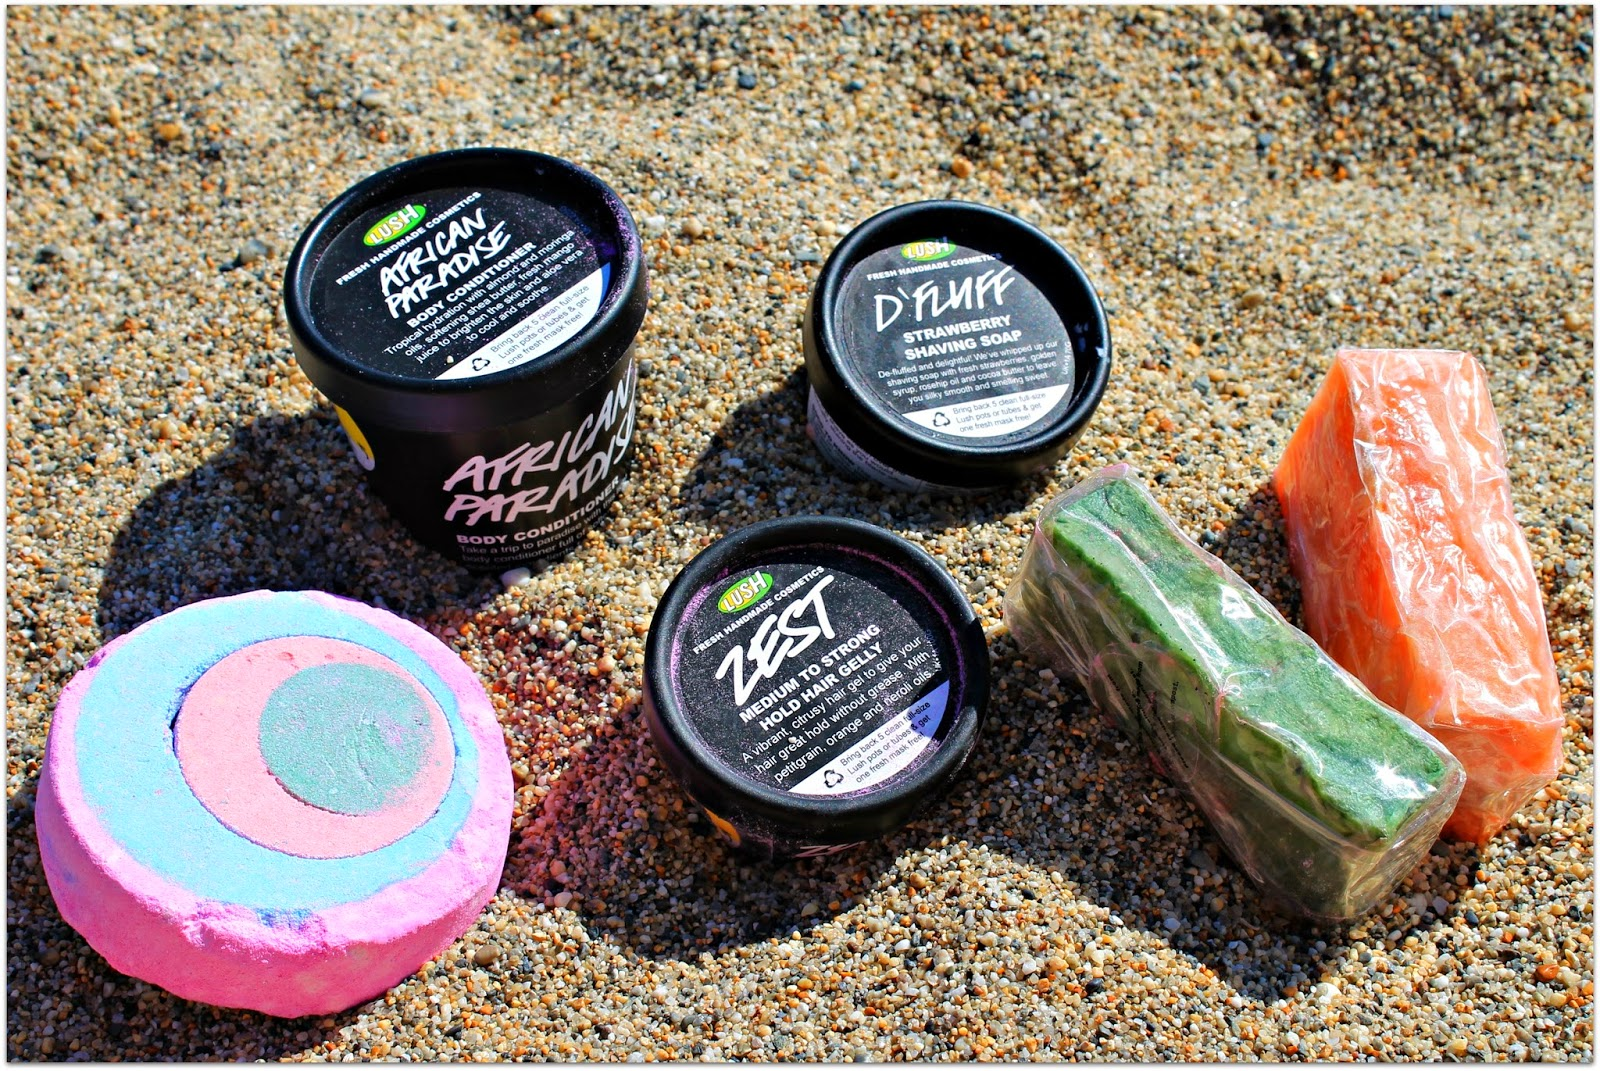 Lush summer collection 2014